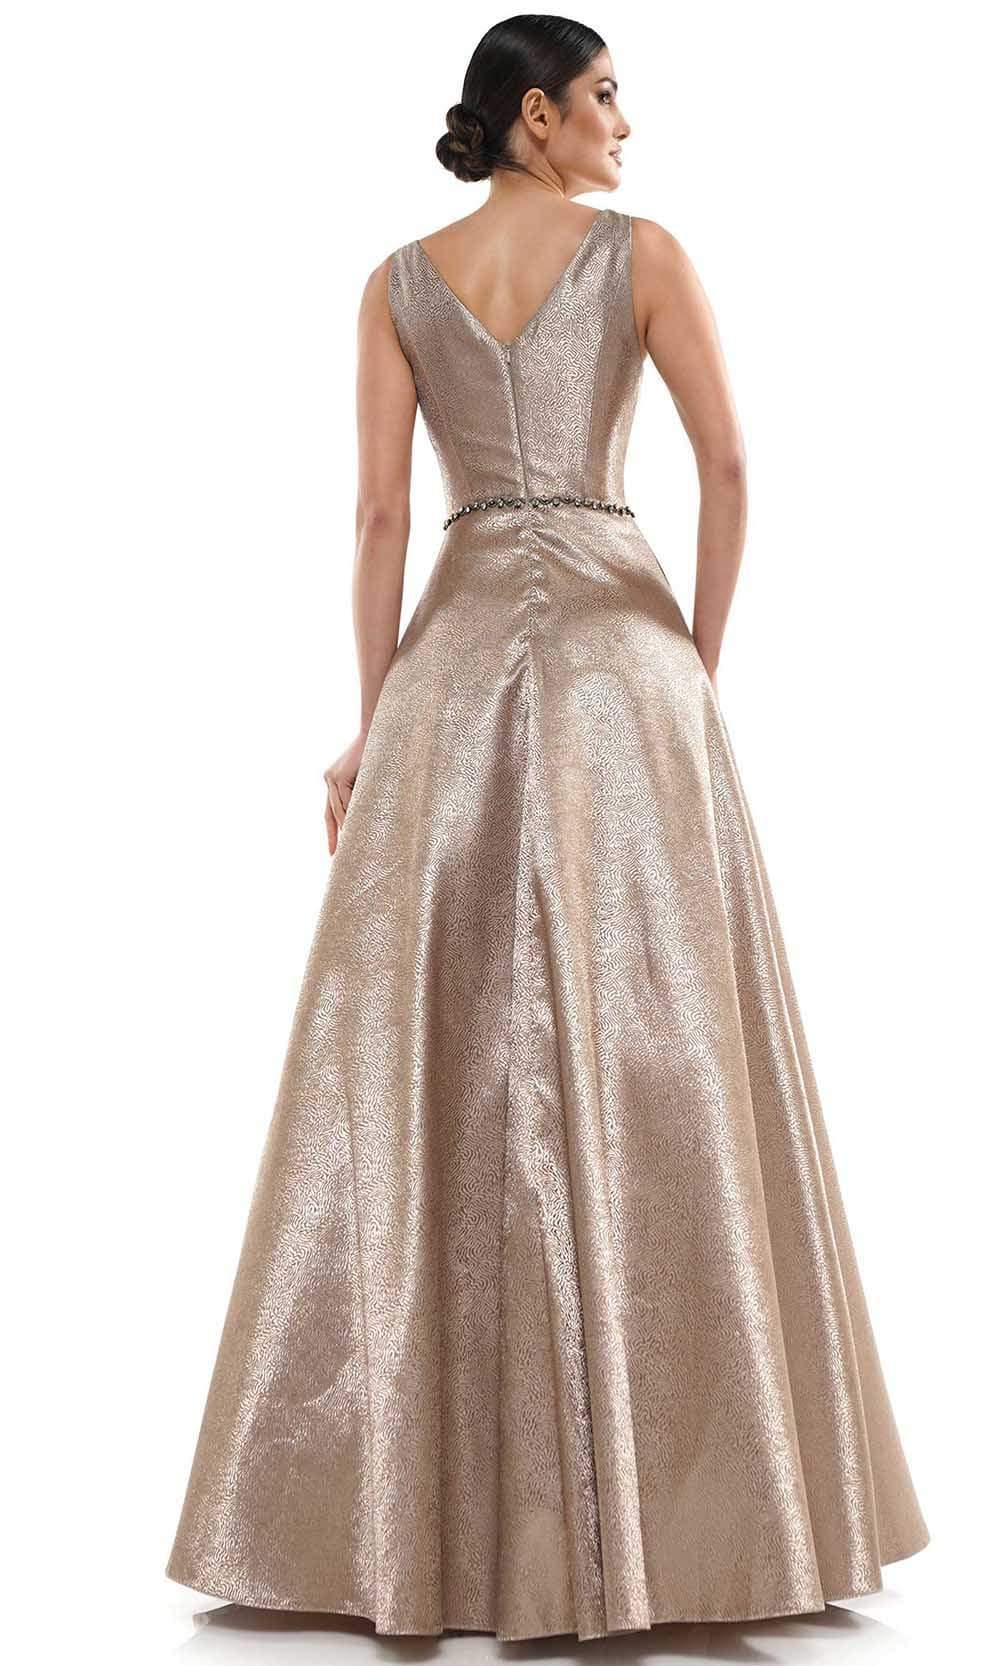 Marsoni by Colors - MV1033 Sleeveless V-Neck Beaded Waist Brocade Gown Mother of the Bride Dresses